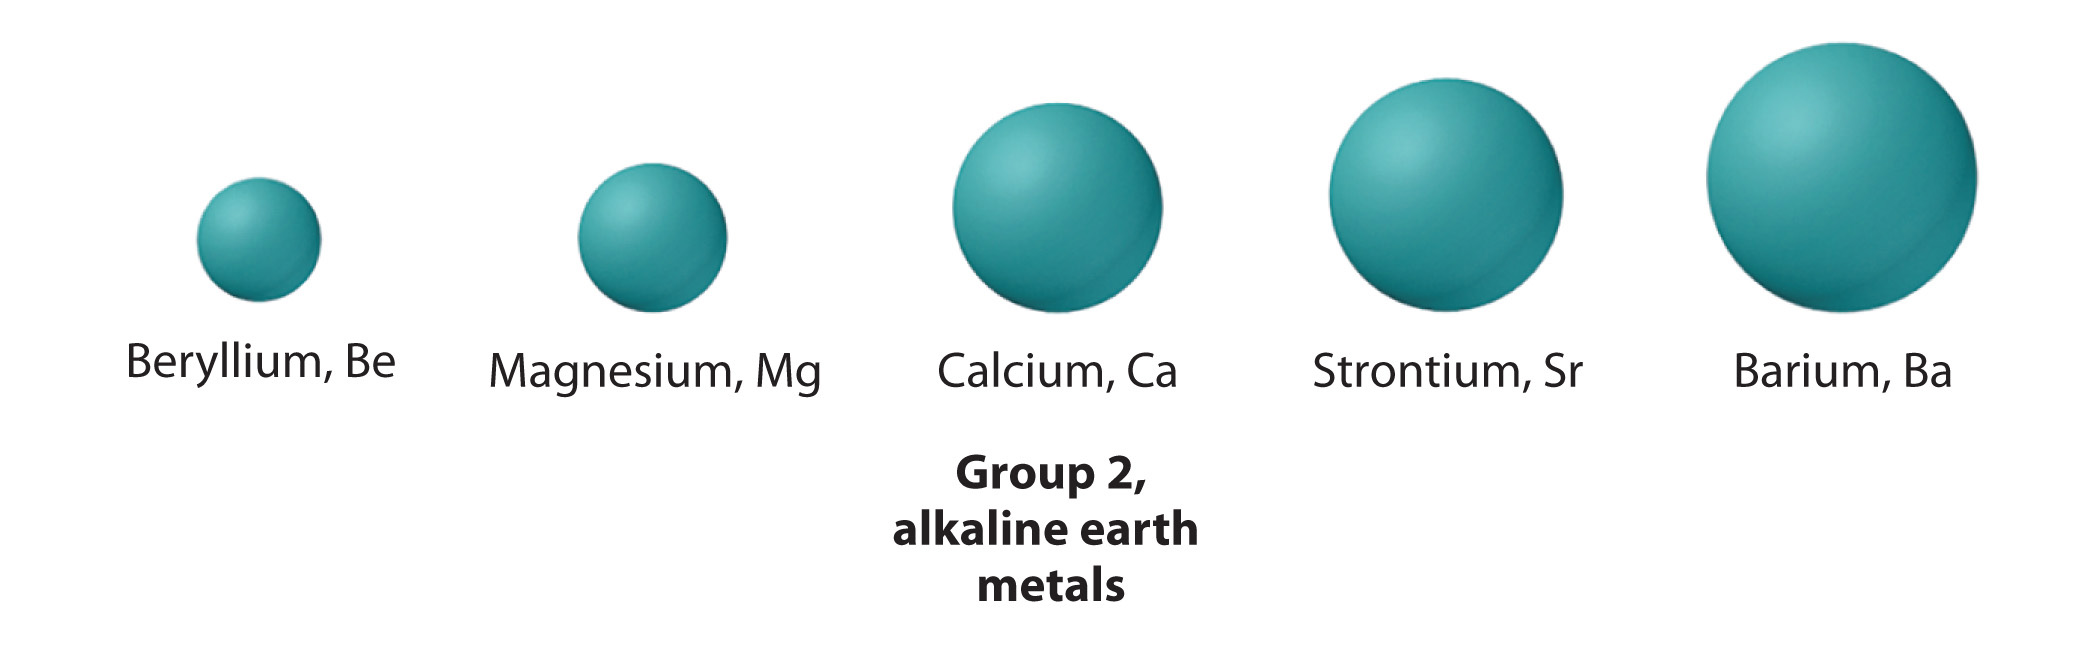 General chemistry principles patterns and applications v10 group 2 the alkaline earth metals urtaz Images